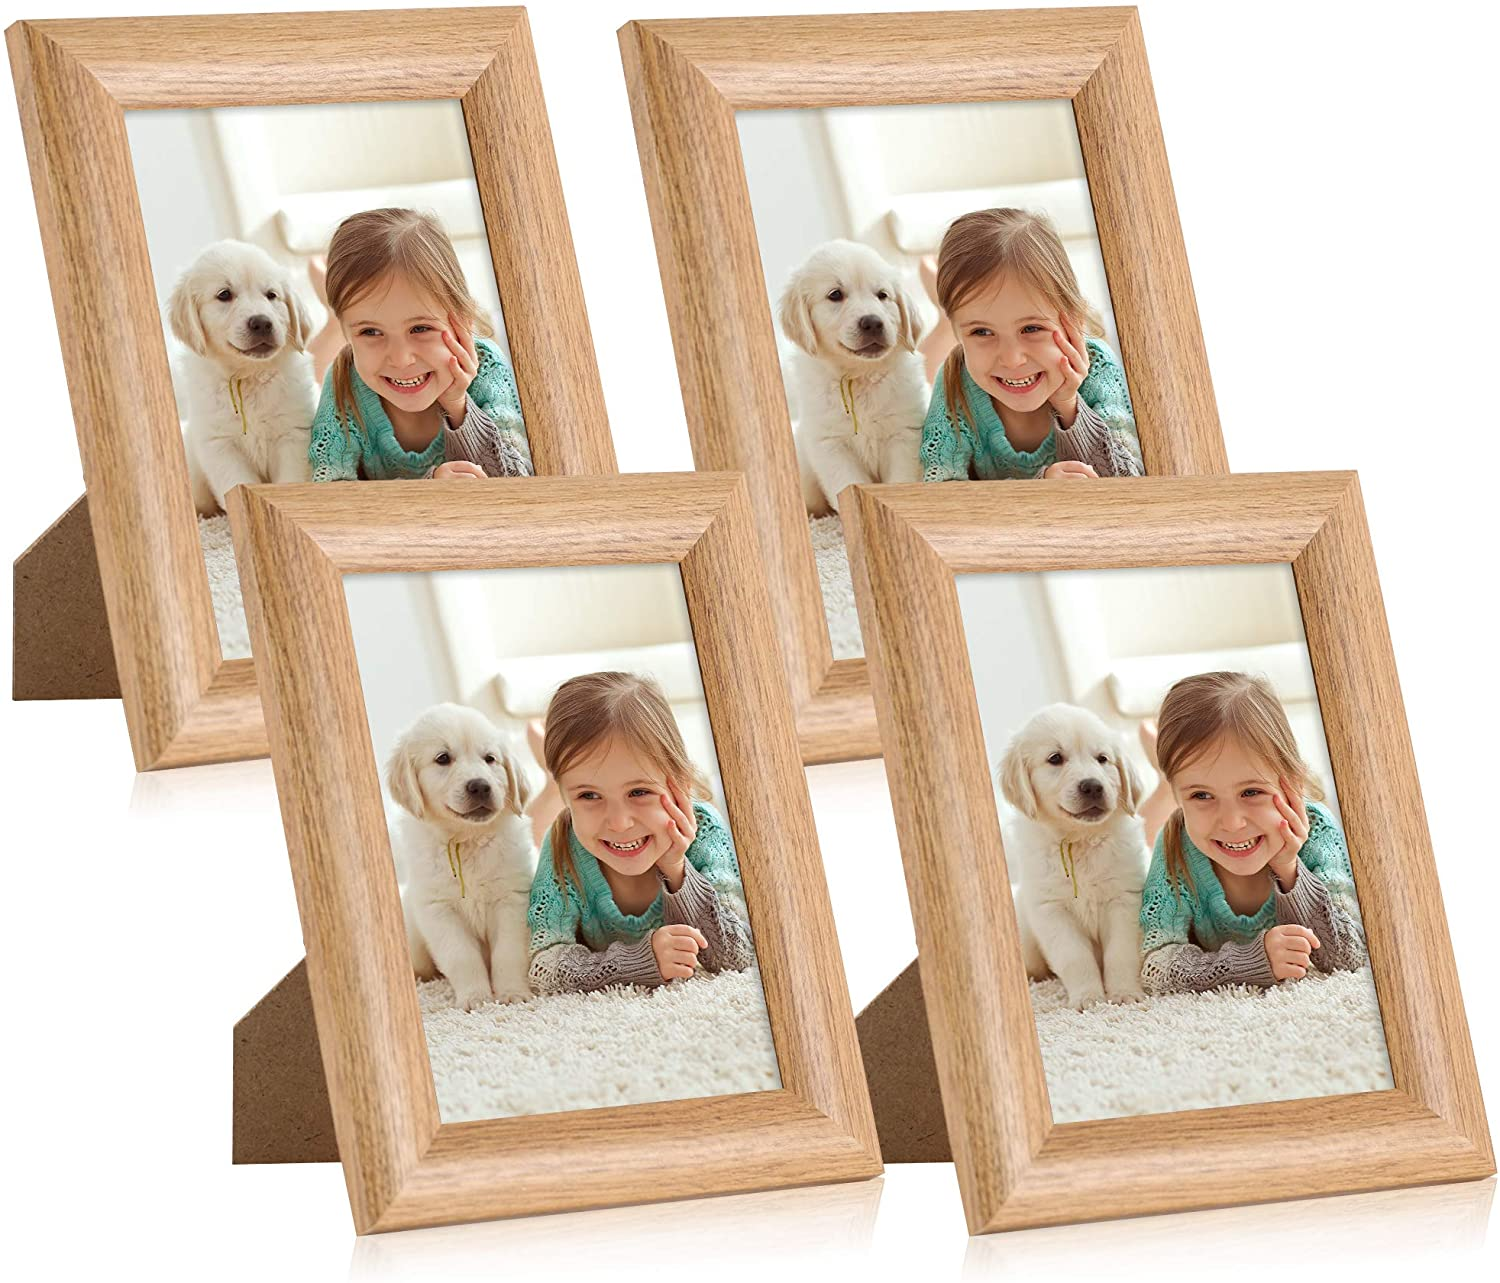 iRahmen 4 Pack 5x7 Sleek Modern Picture Frame Set with High Definition Glass Photo Frame for Desktop Display and Wall Mounting (IR-US004-BR-P5X7)